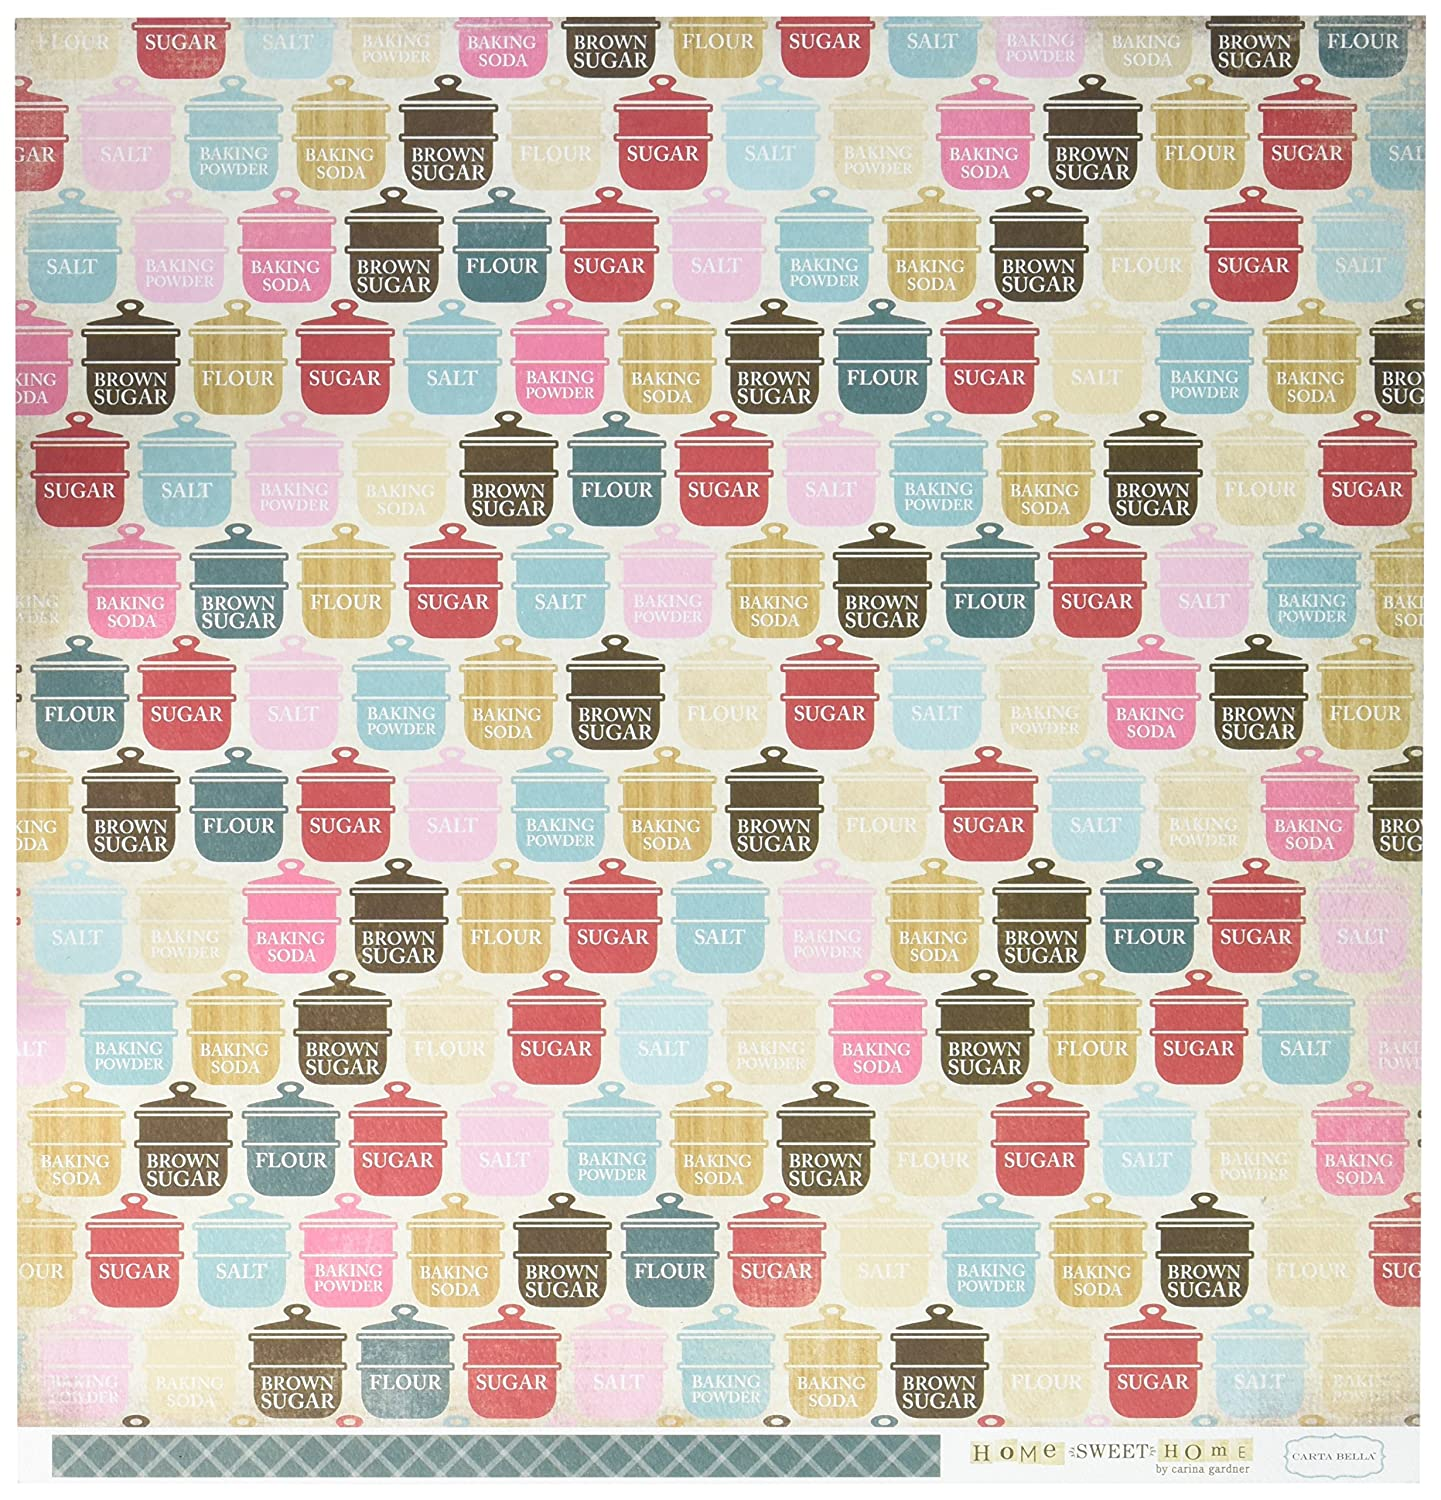 Echo Park Paper CBHSH47007 Home Sweet Home Double-Sided Cardstock (25 Sheets Per Pack), 12 x 12, Baking Ingredients, Assorted by Echo Park Paper B017GKAIS0